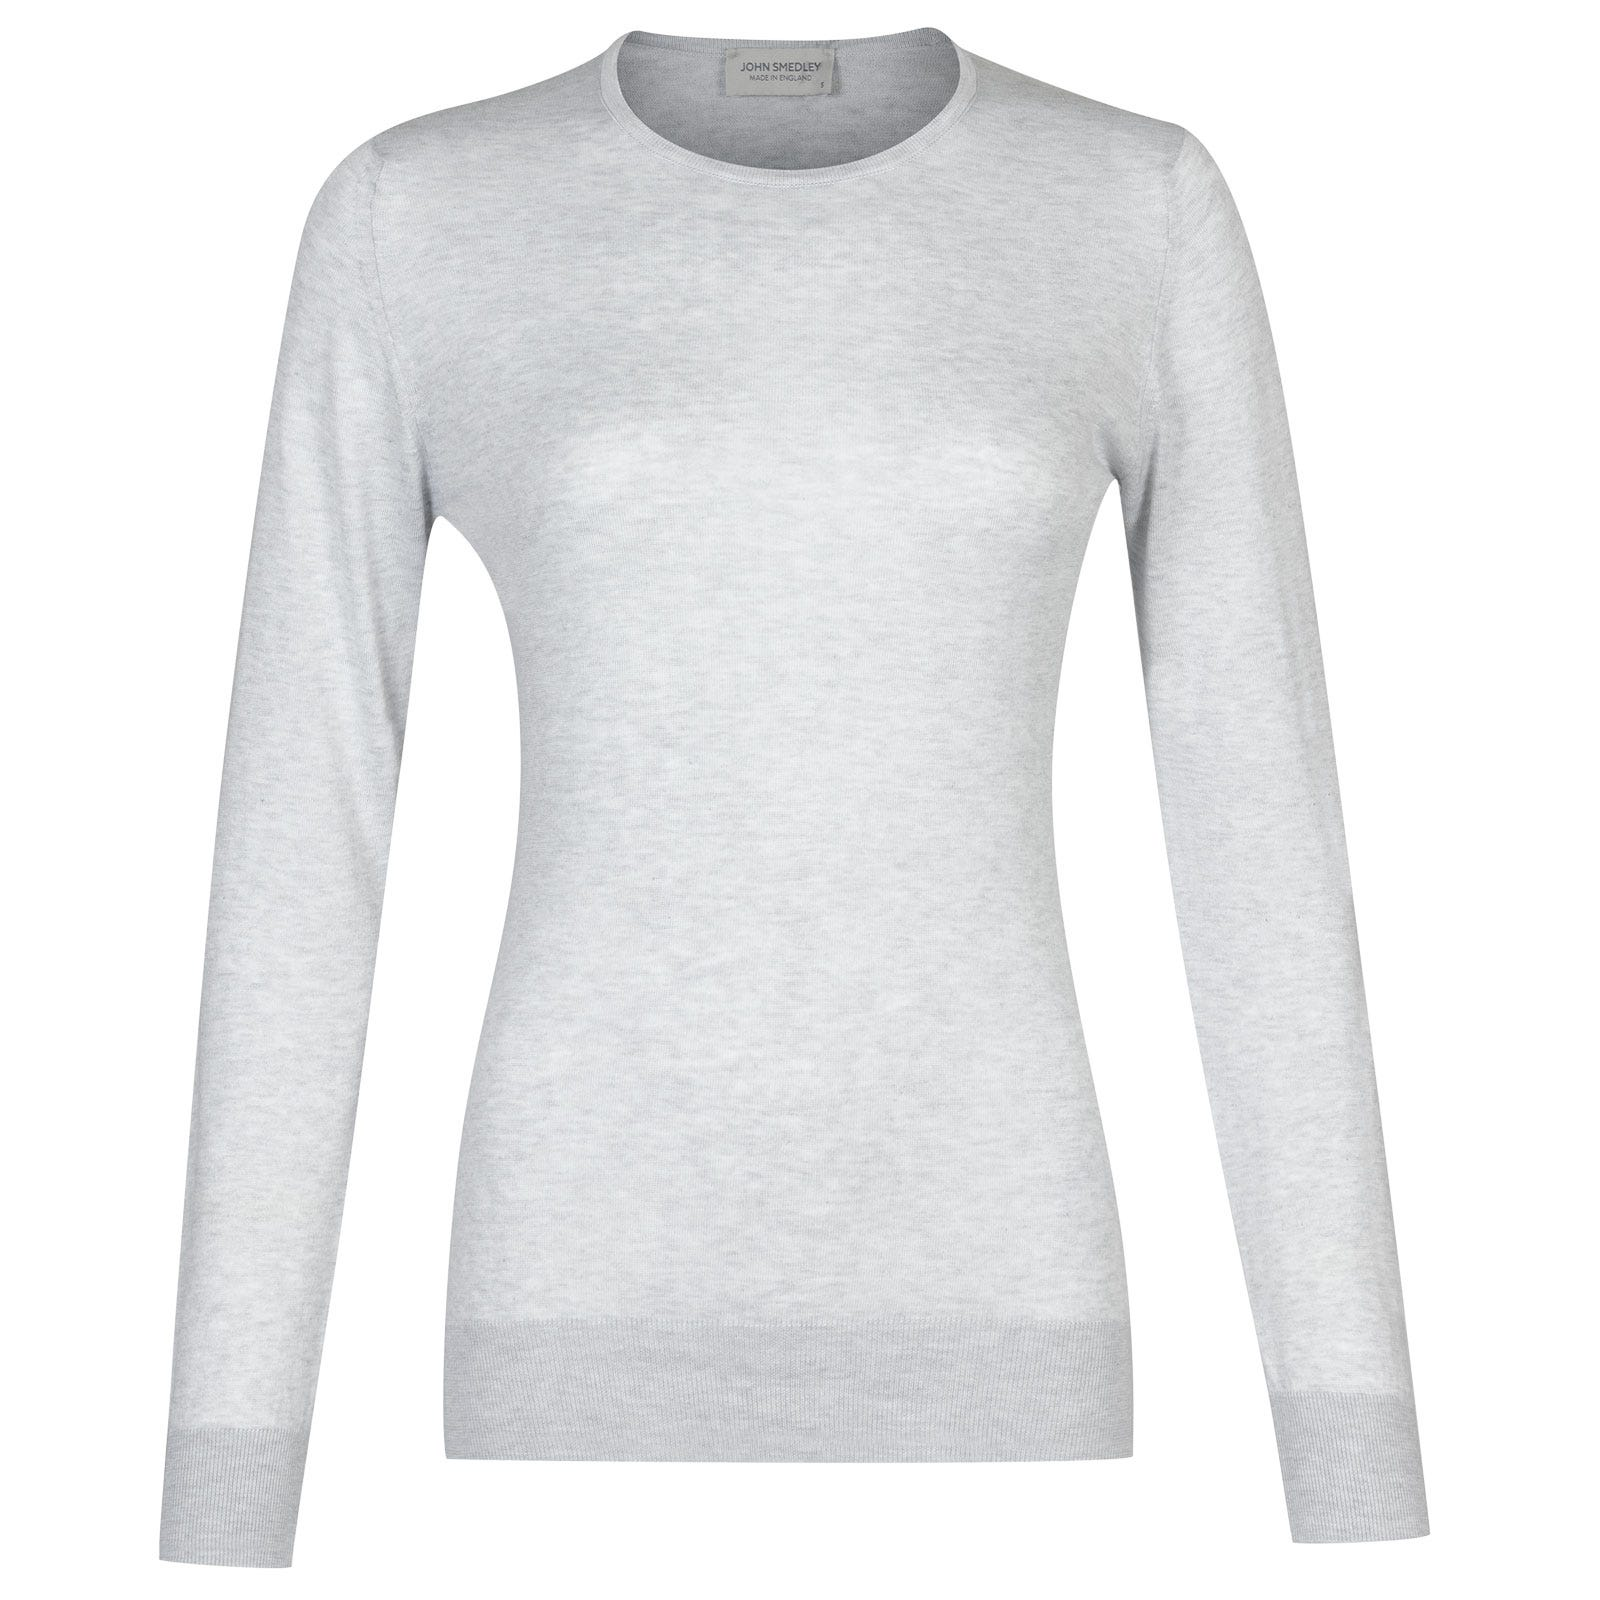 John Smedley paddington Sea Island Cotton Sweater in Feather Grey-S